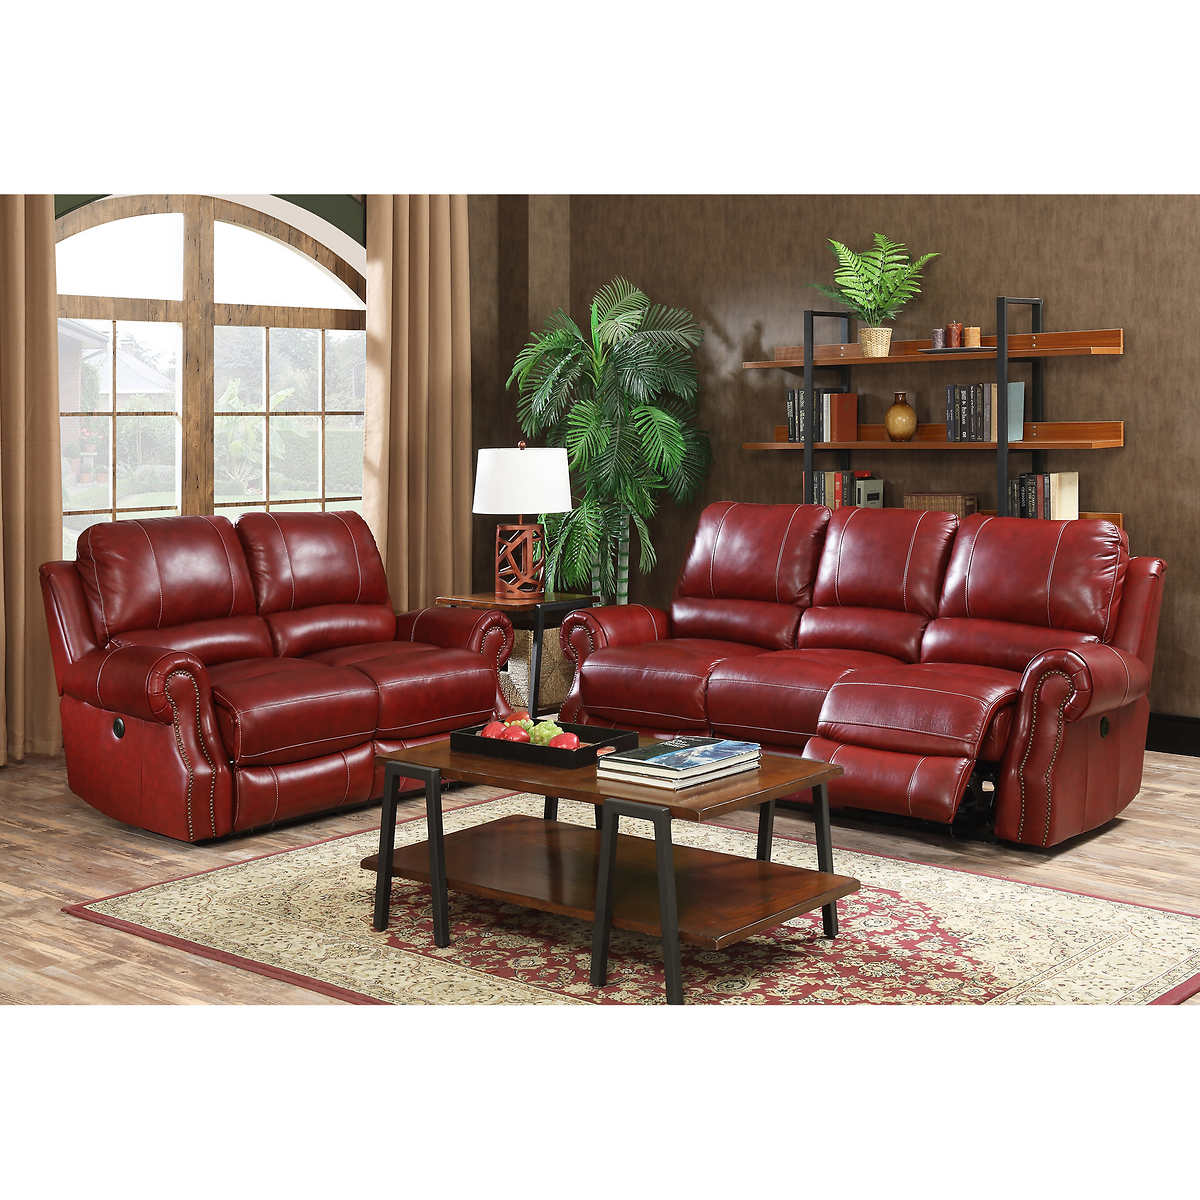 Leather Power Recliner Sofa Canada